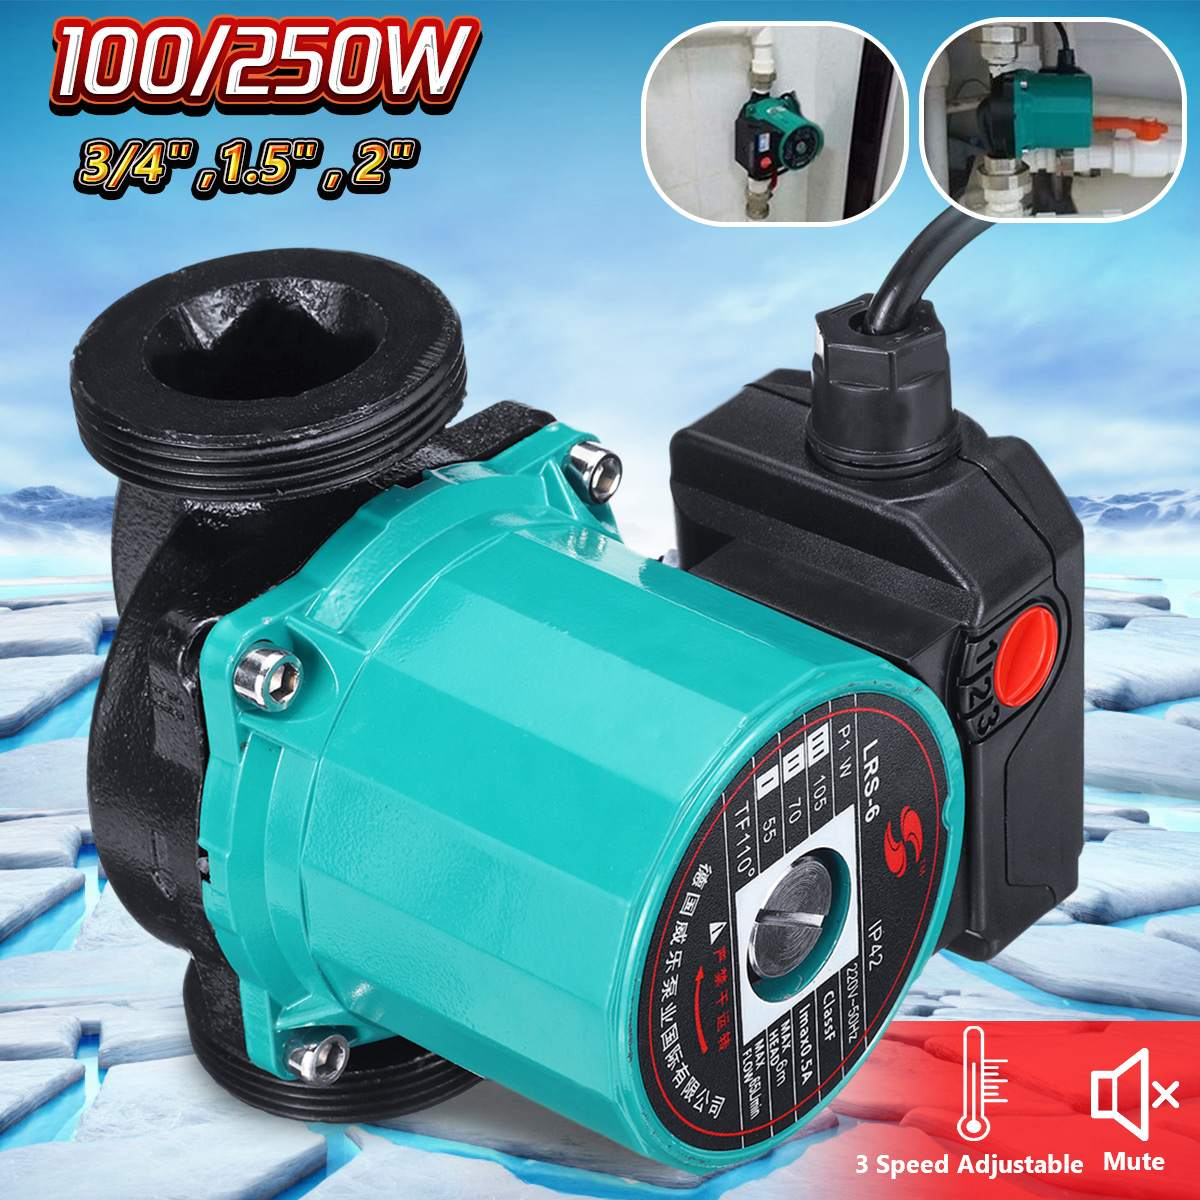 3-Speed 220V Central Heating Circulator Mute Boiler Hot Water Circulating Pump Cast Iron IP42 Protection F Class Insulation3-Speed 220V Central Heating Circulator Mute Boiler Hot Water Circulating Pump Cast Iron IP42 Protection F Class Insulation